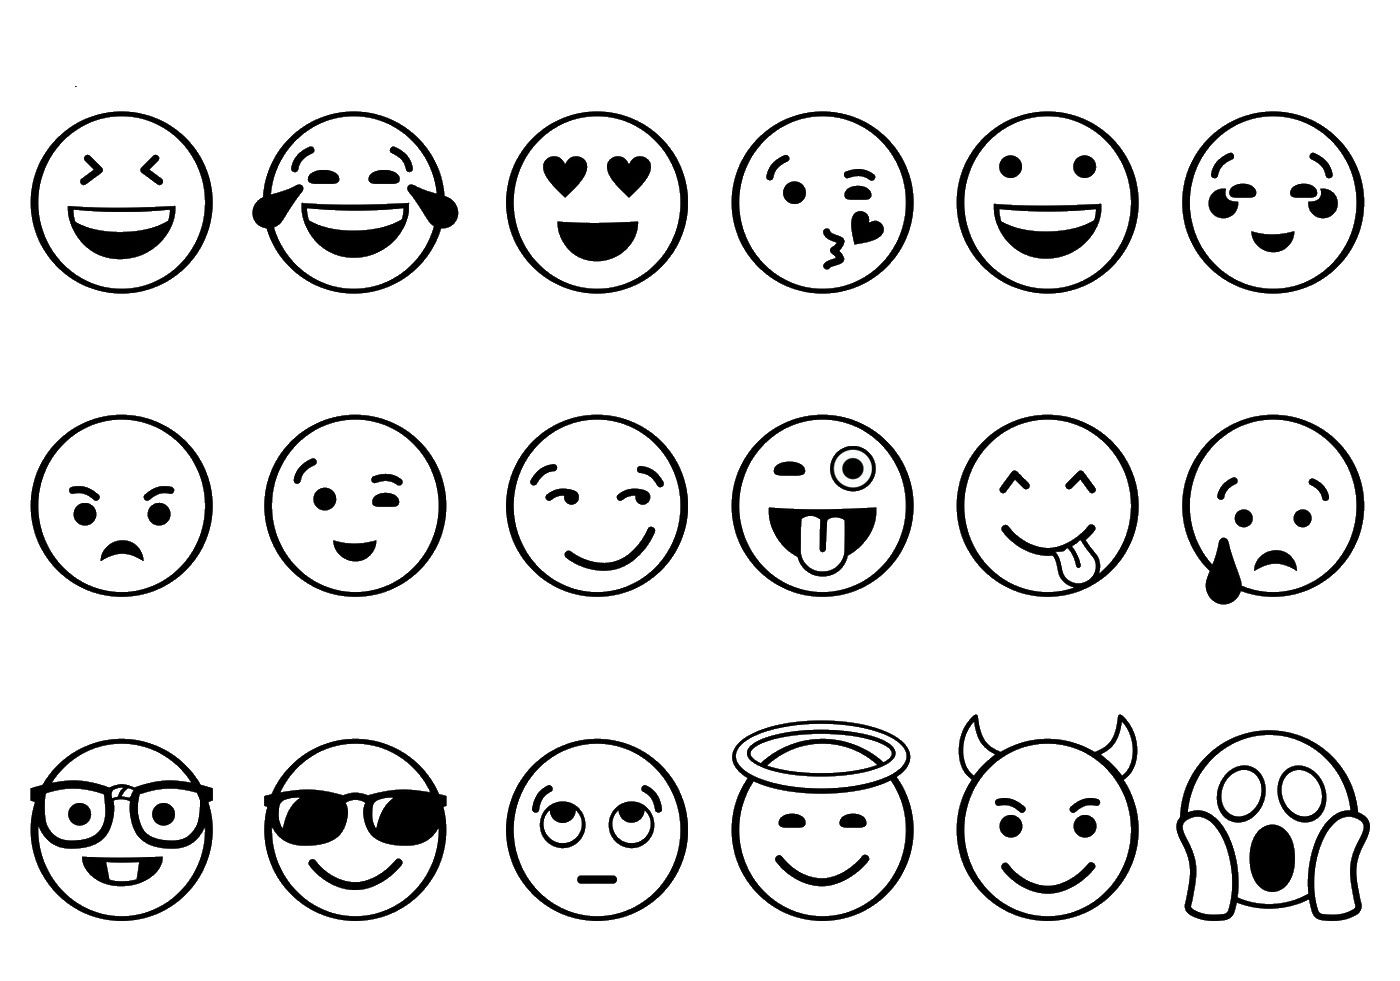 Emoji Coloring Pages Ideas To Express Your Feeling Free Coloring Sheets Emoji Coloring Pages Free Emoji Free Coloring Pages